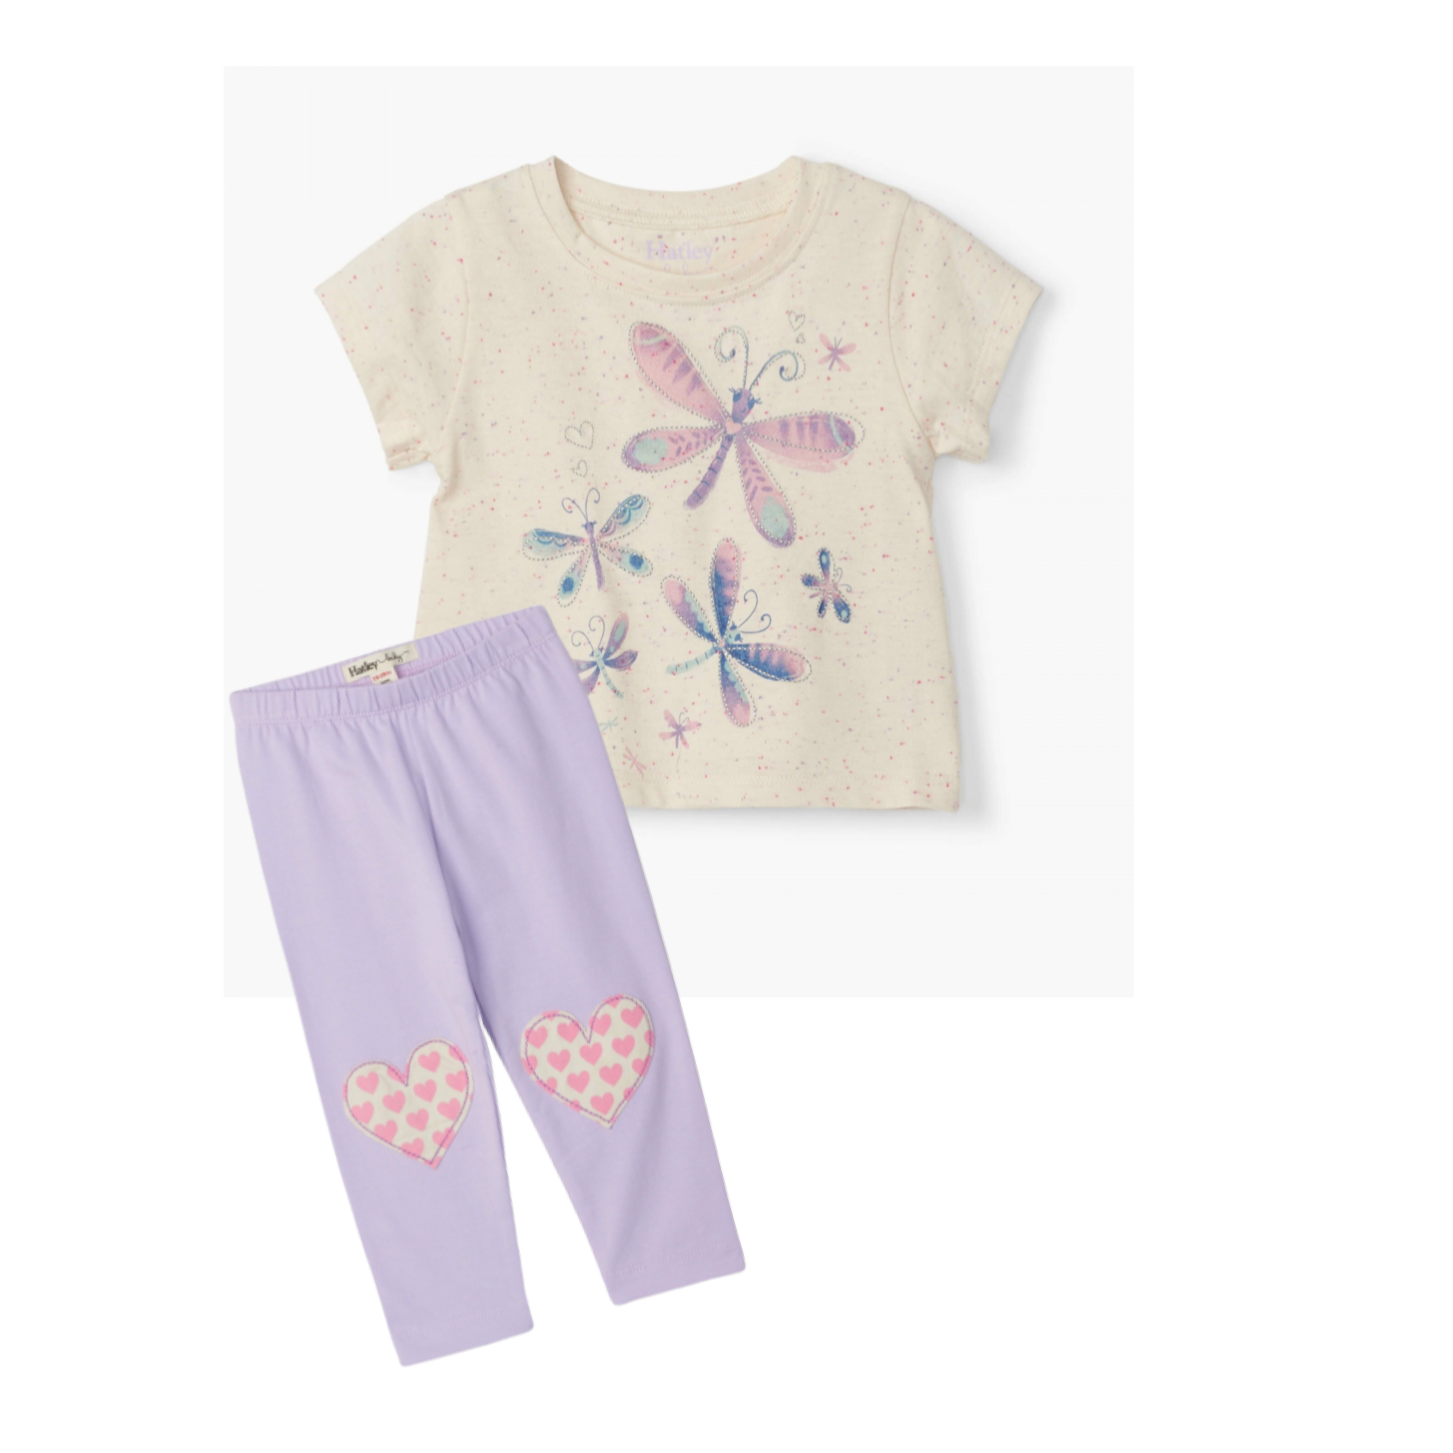 Painted Dragonflies Baby Tee Set